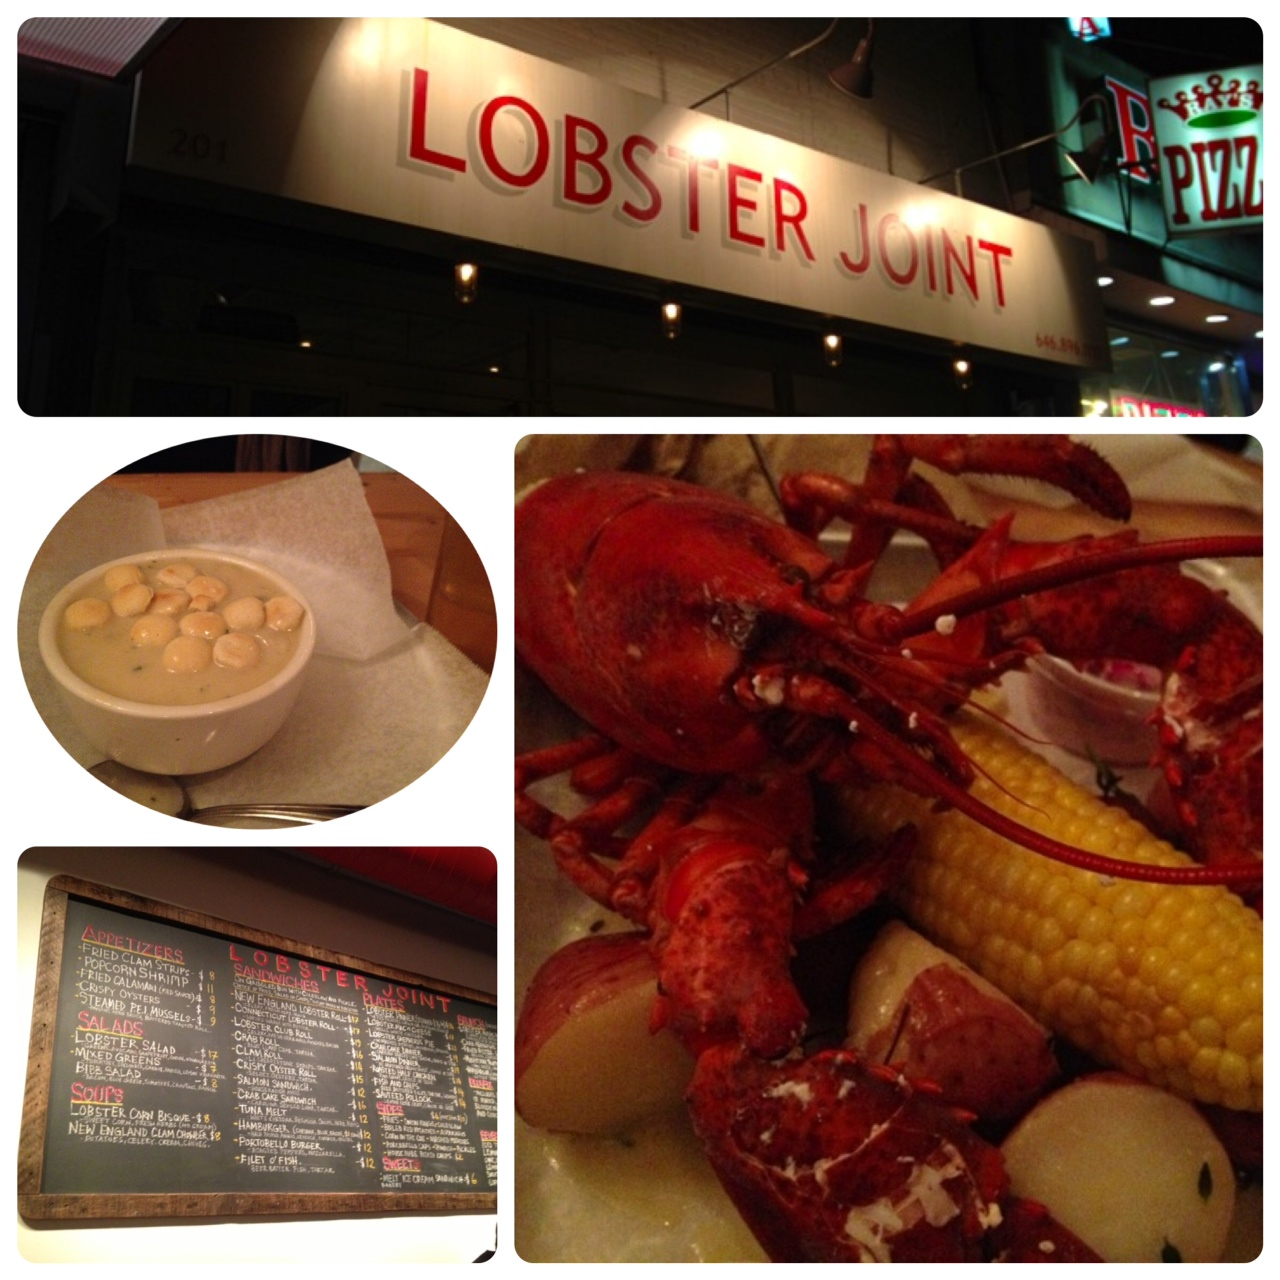 "Lobster Joint  201 E Houston St, New York, NY 10002  This ""Lobster Joint"" has recently joined our neighborhood so we decided to check them out one night. The atomosphere is casual and friendly. They have variety of seafood dishes such as soup, salad, and sandwiches. Steamed Lobster, which is perfect pairing with beer, was juicy and delicious! Lobster is not only tasty but it contains nutritional value such as Omega 3 fatty acid, vitamin B12, potassium, and so on. Try them and enjoy the taste and health benefits of lobster when you are in Lower East Side!"